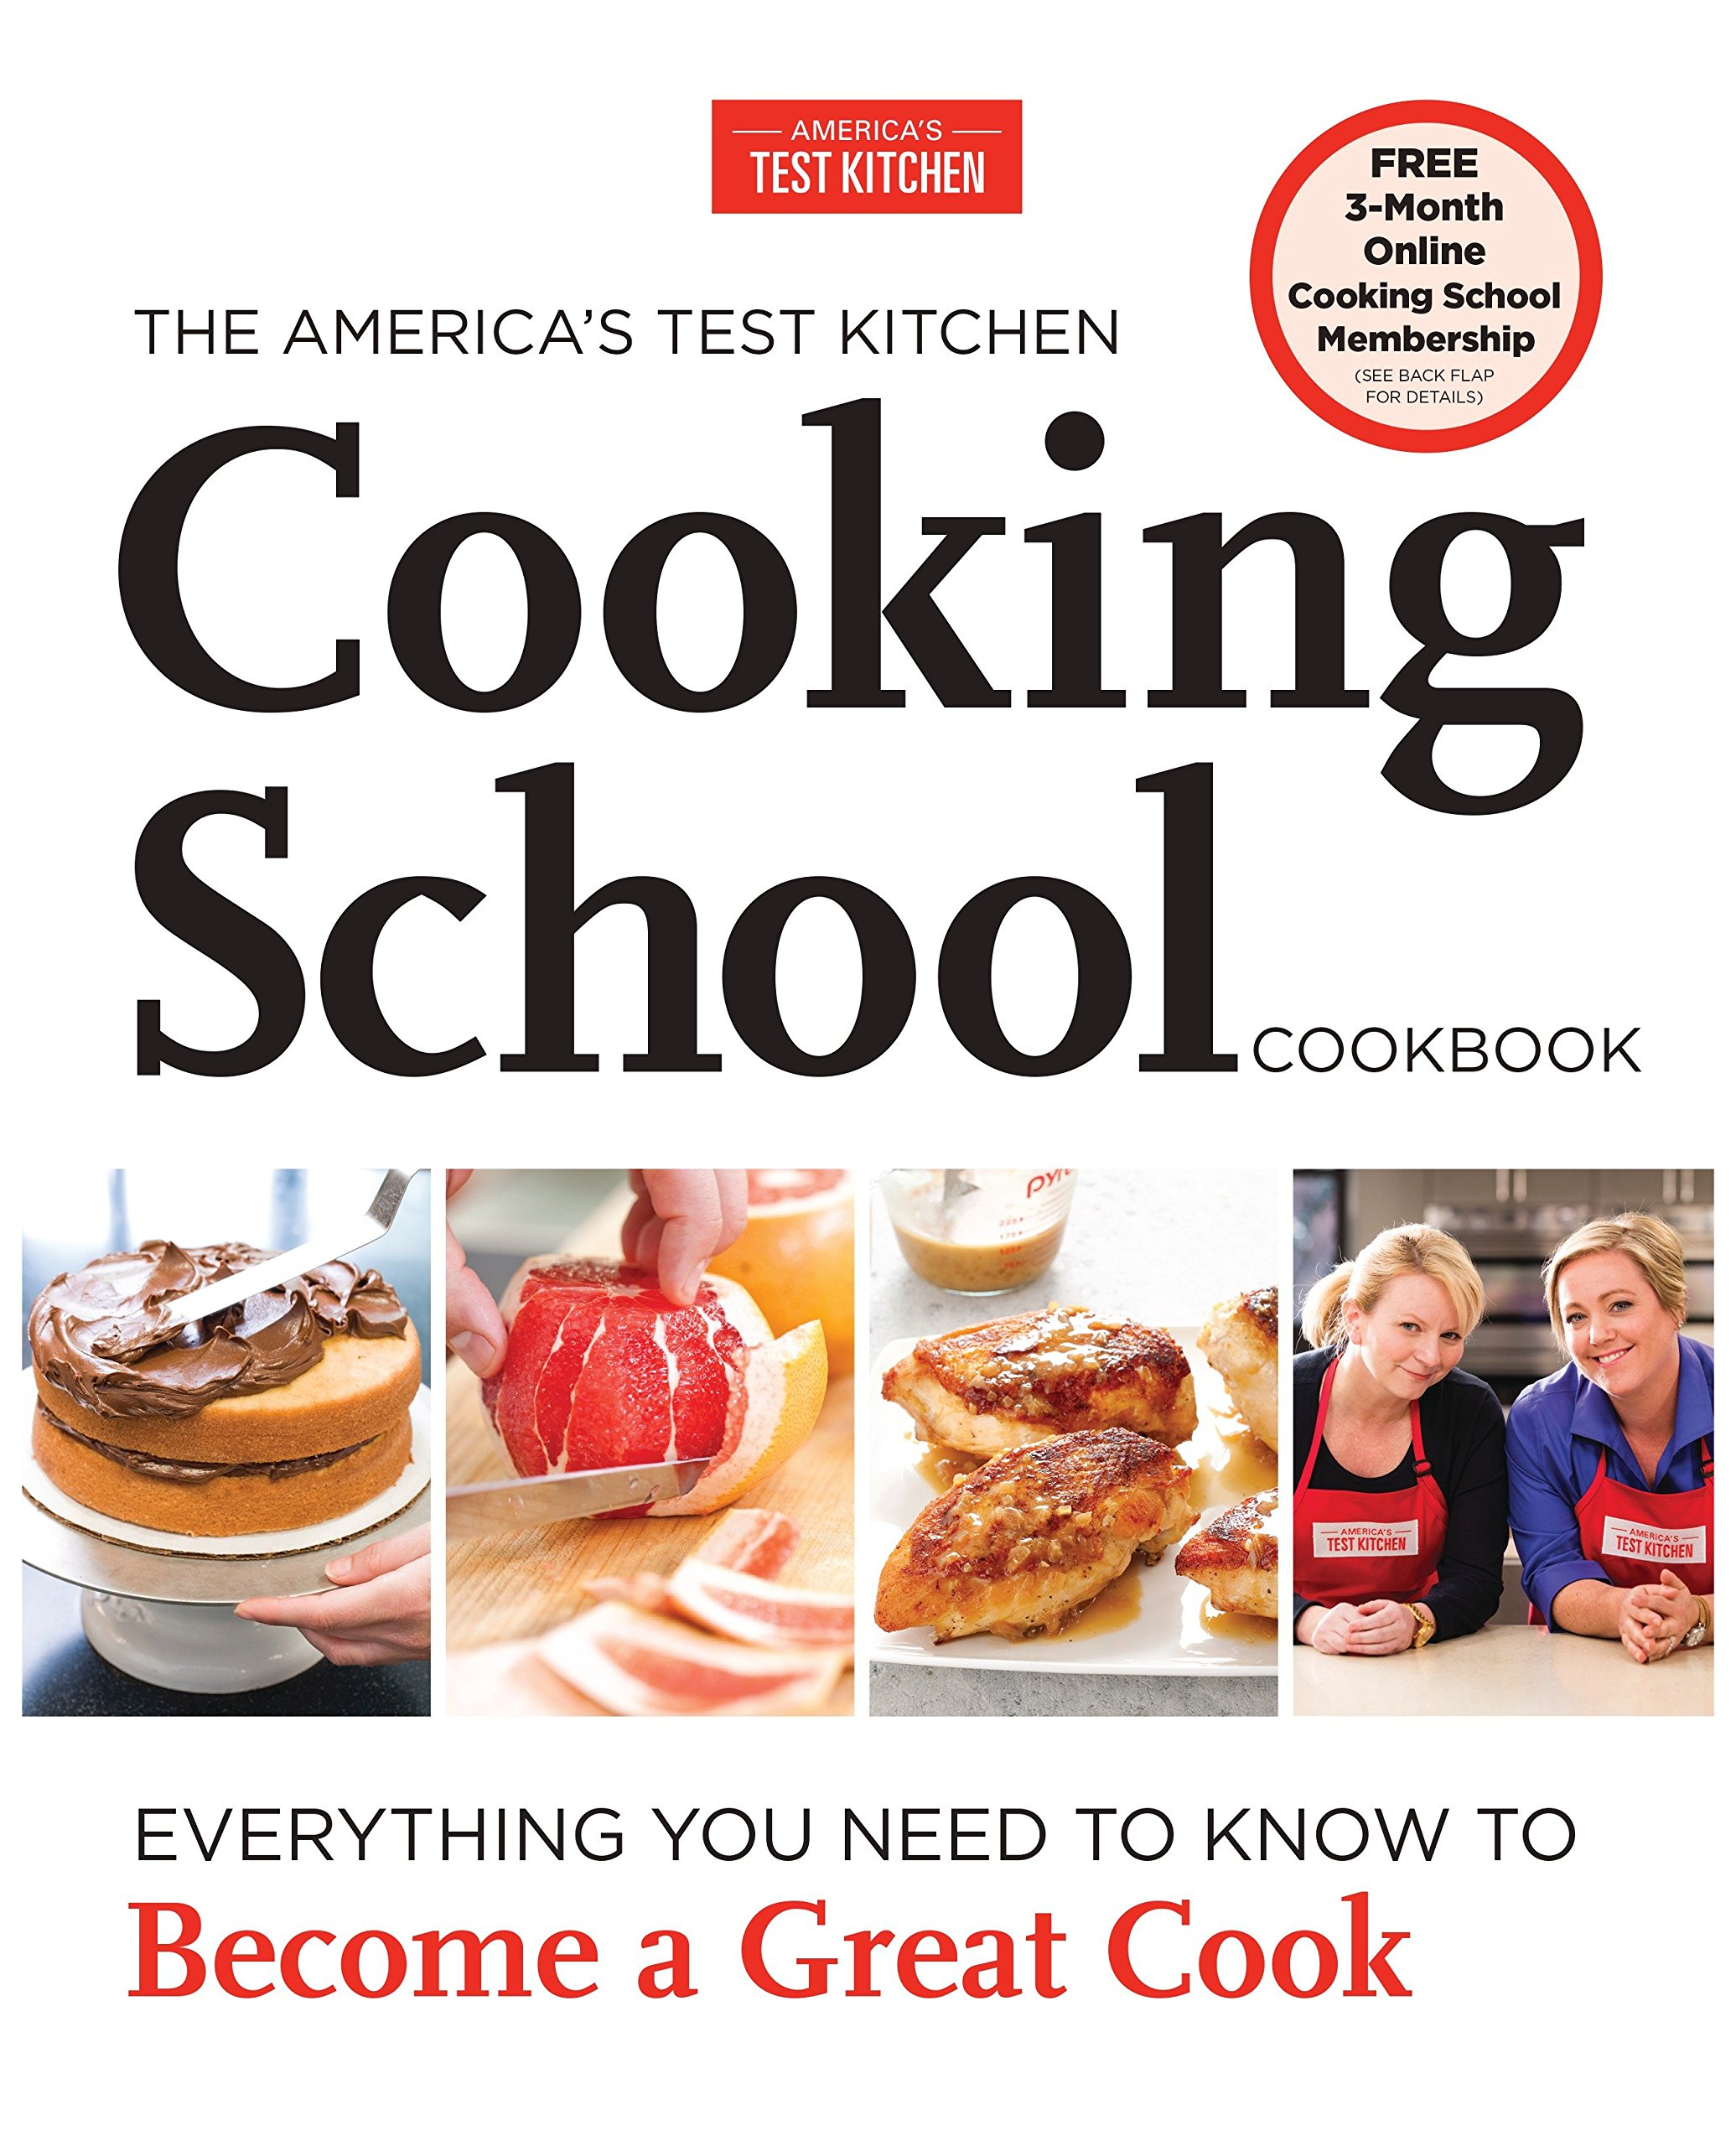 Tremendous The Americas Test Kitchen Cooking School Cookbook Home Interior And Landscaping Oversignezvosmurscom